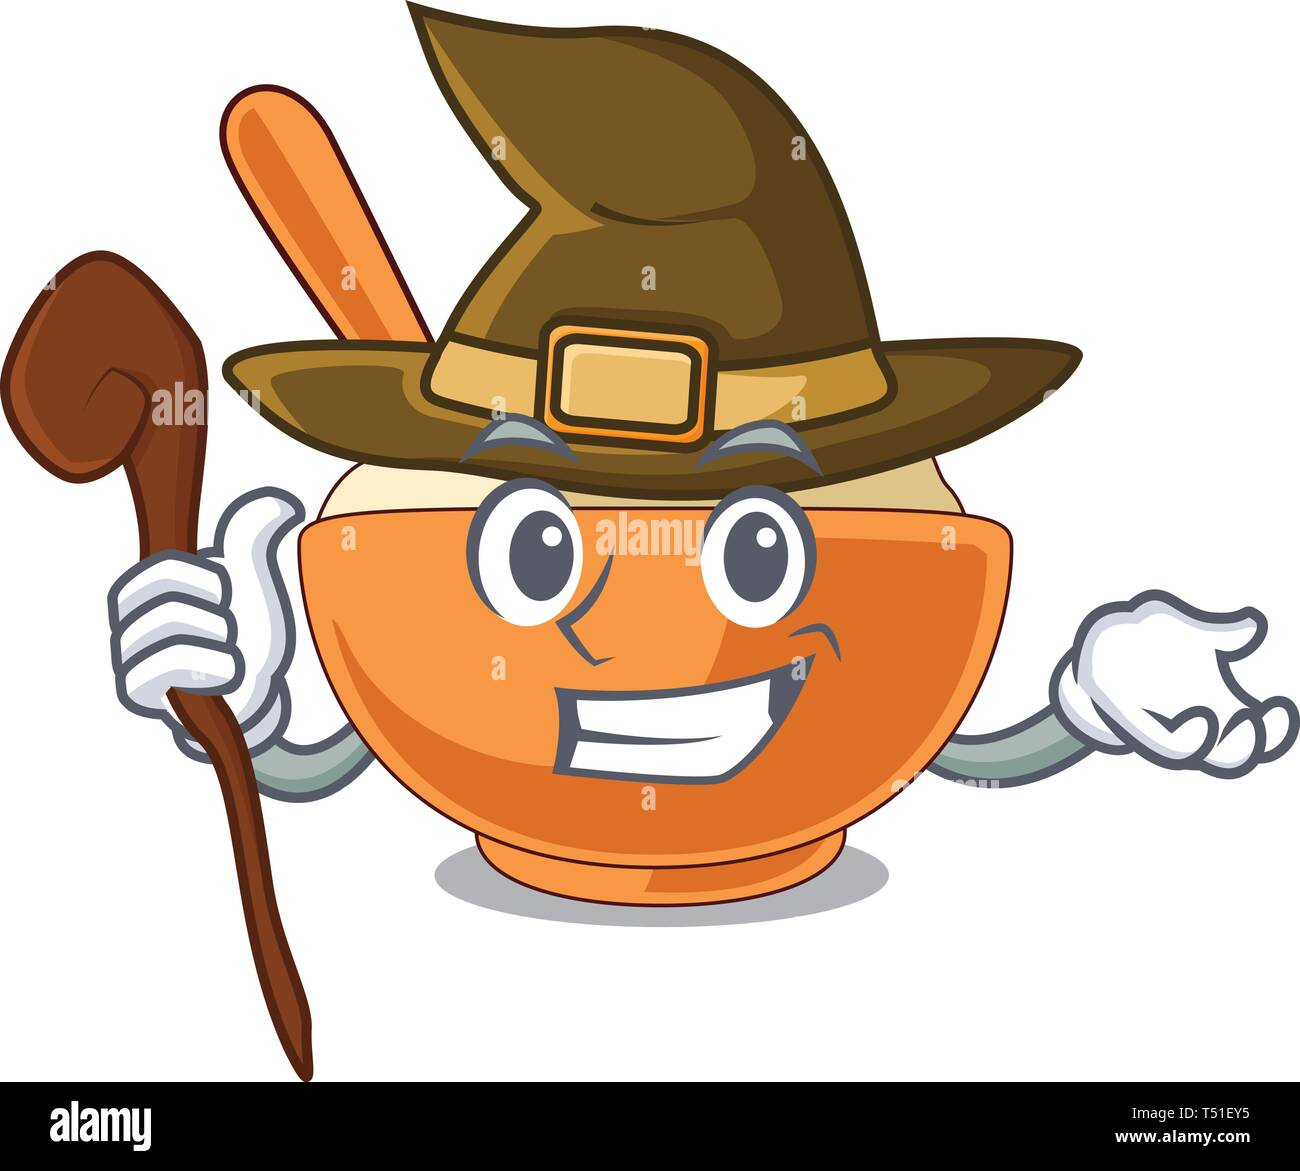 Witch mashed potato in the shape mascot - Stock Image